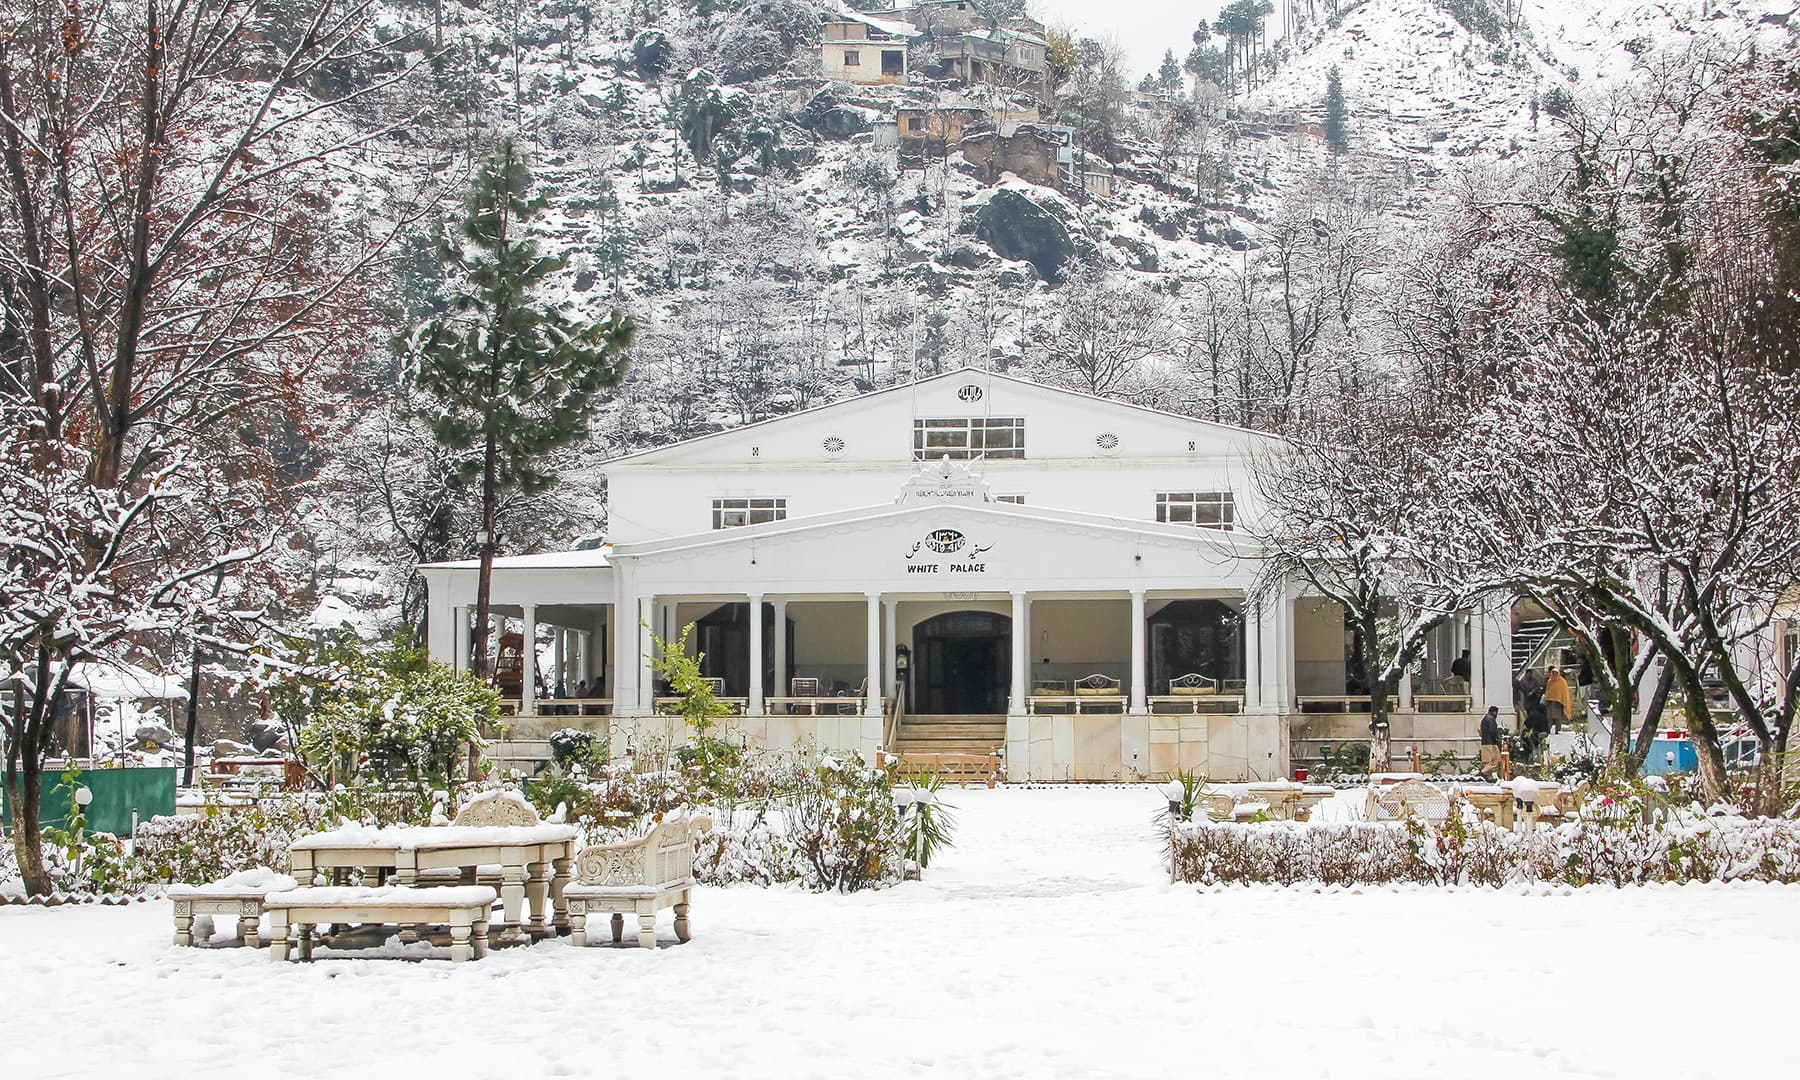 **A majestic view of the White Palace in Marghuzar valley. — Photo by author**